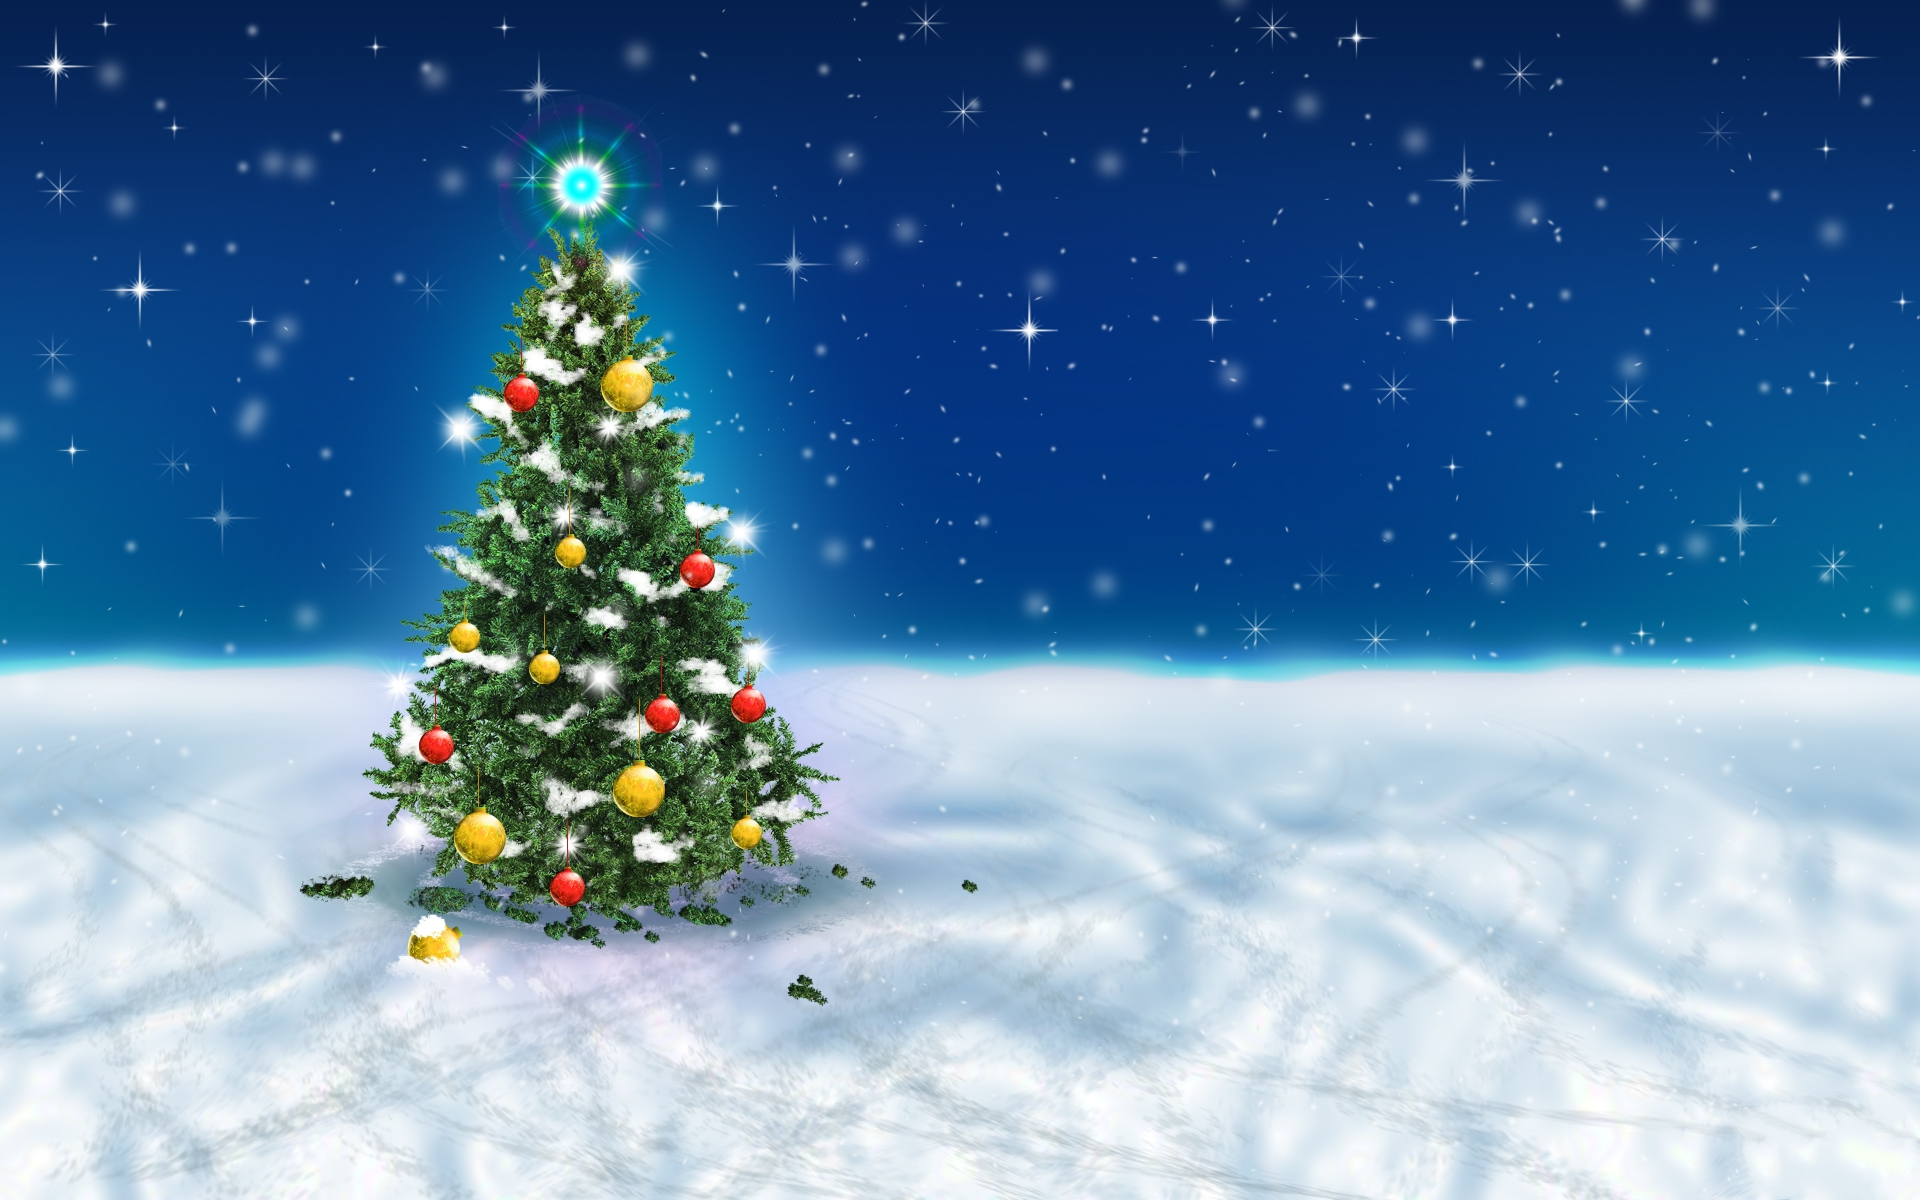 Xmas-Desktop-Background